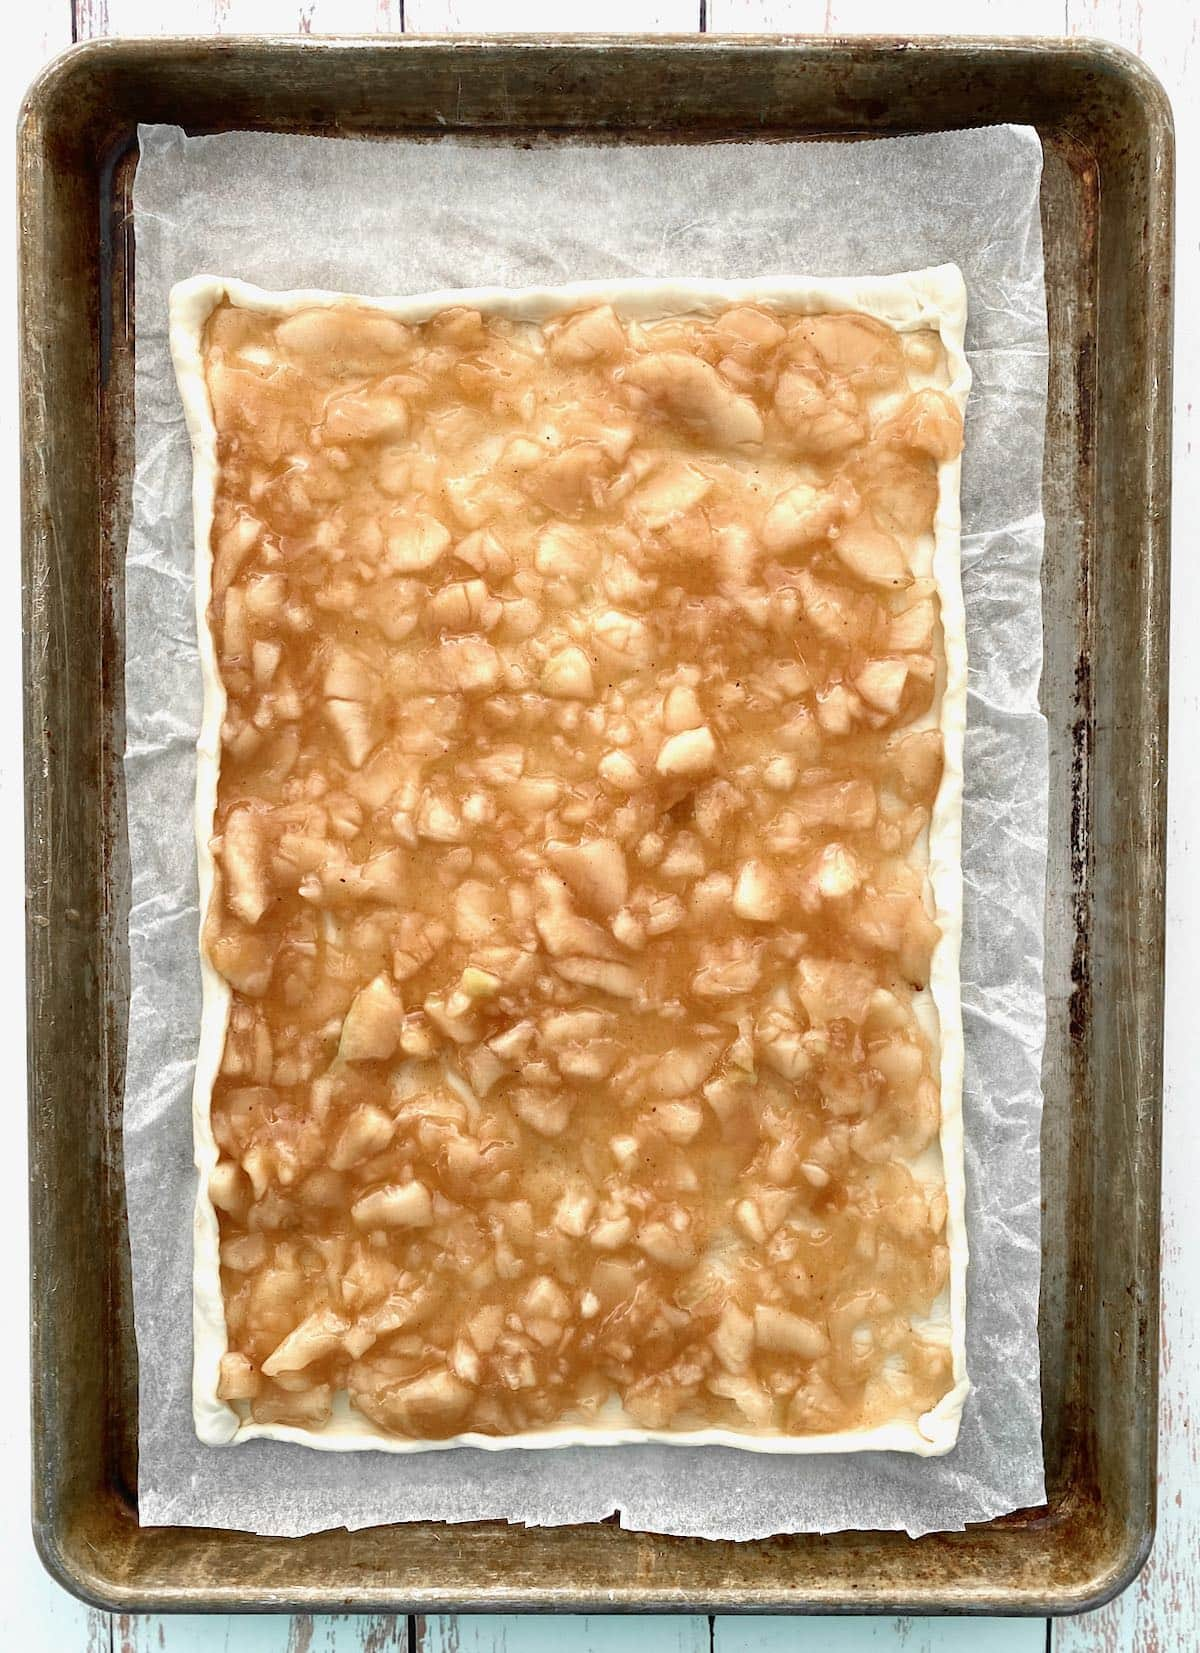 apple filling spread on top of puff pastry.